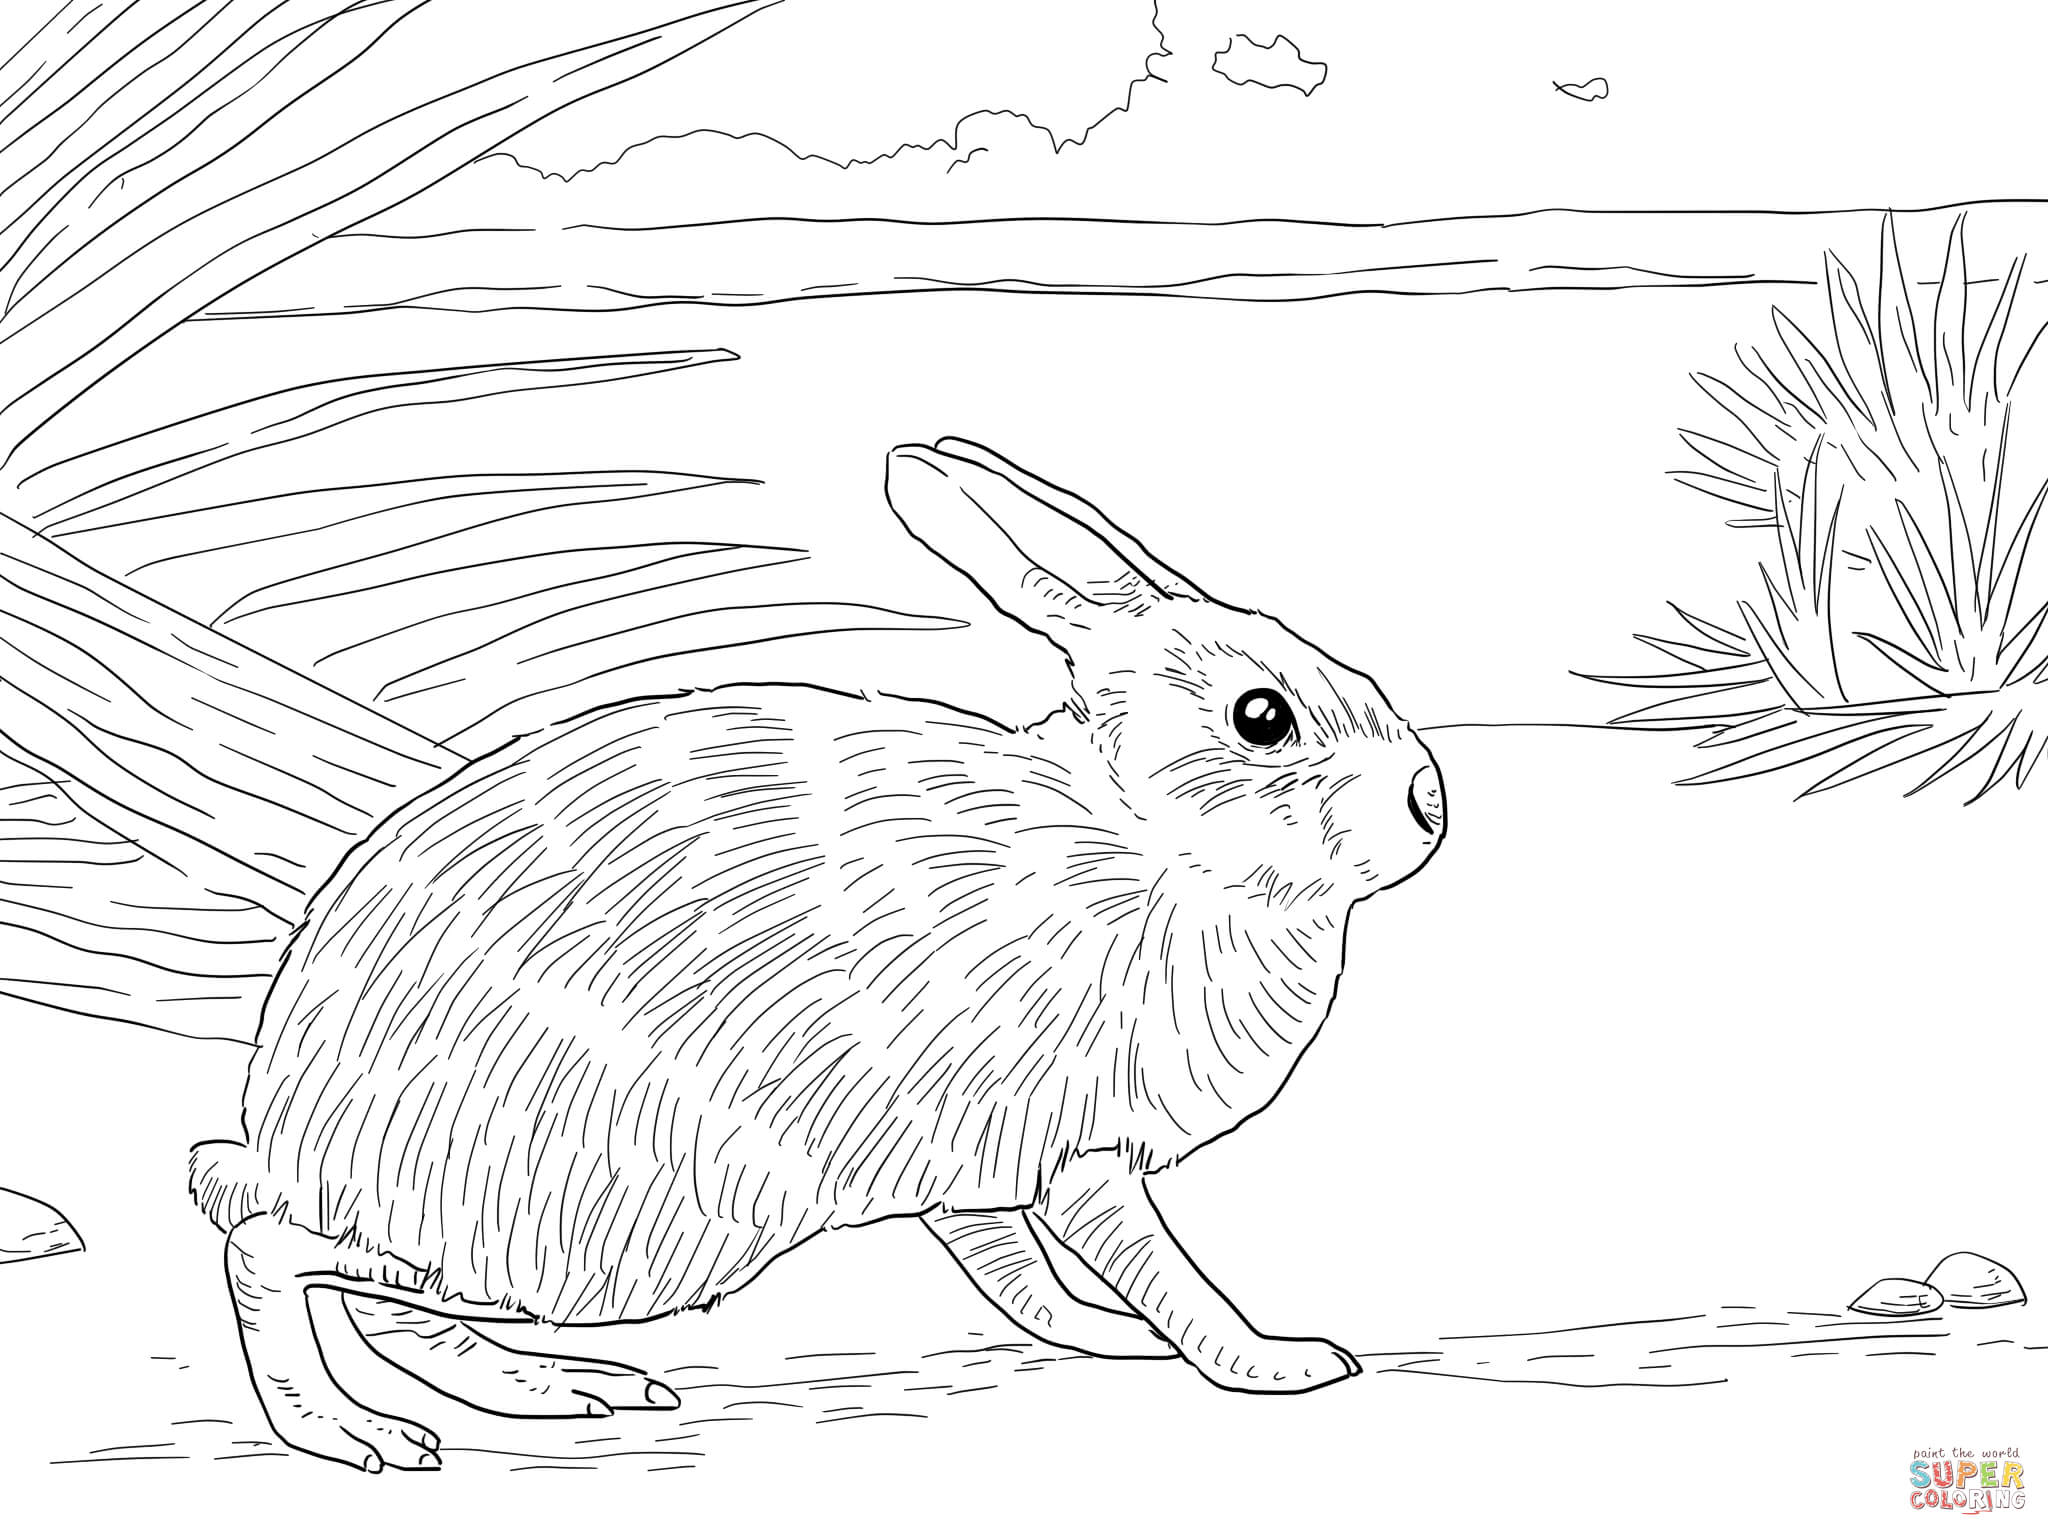 velveteen rabbit coloring pages welcome to dover publications pages velveteen rabbit coloring